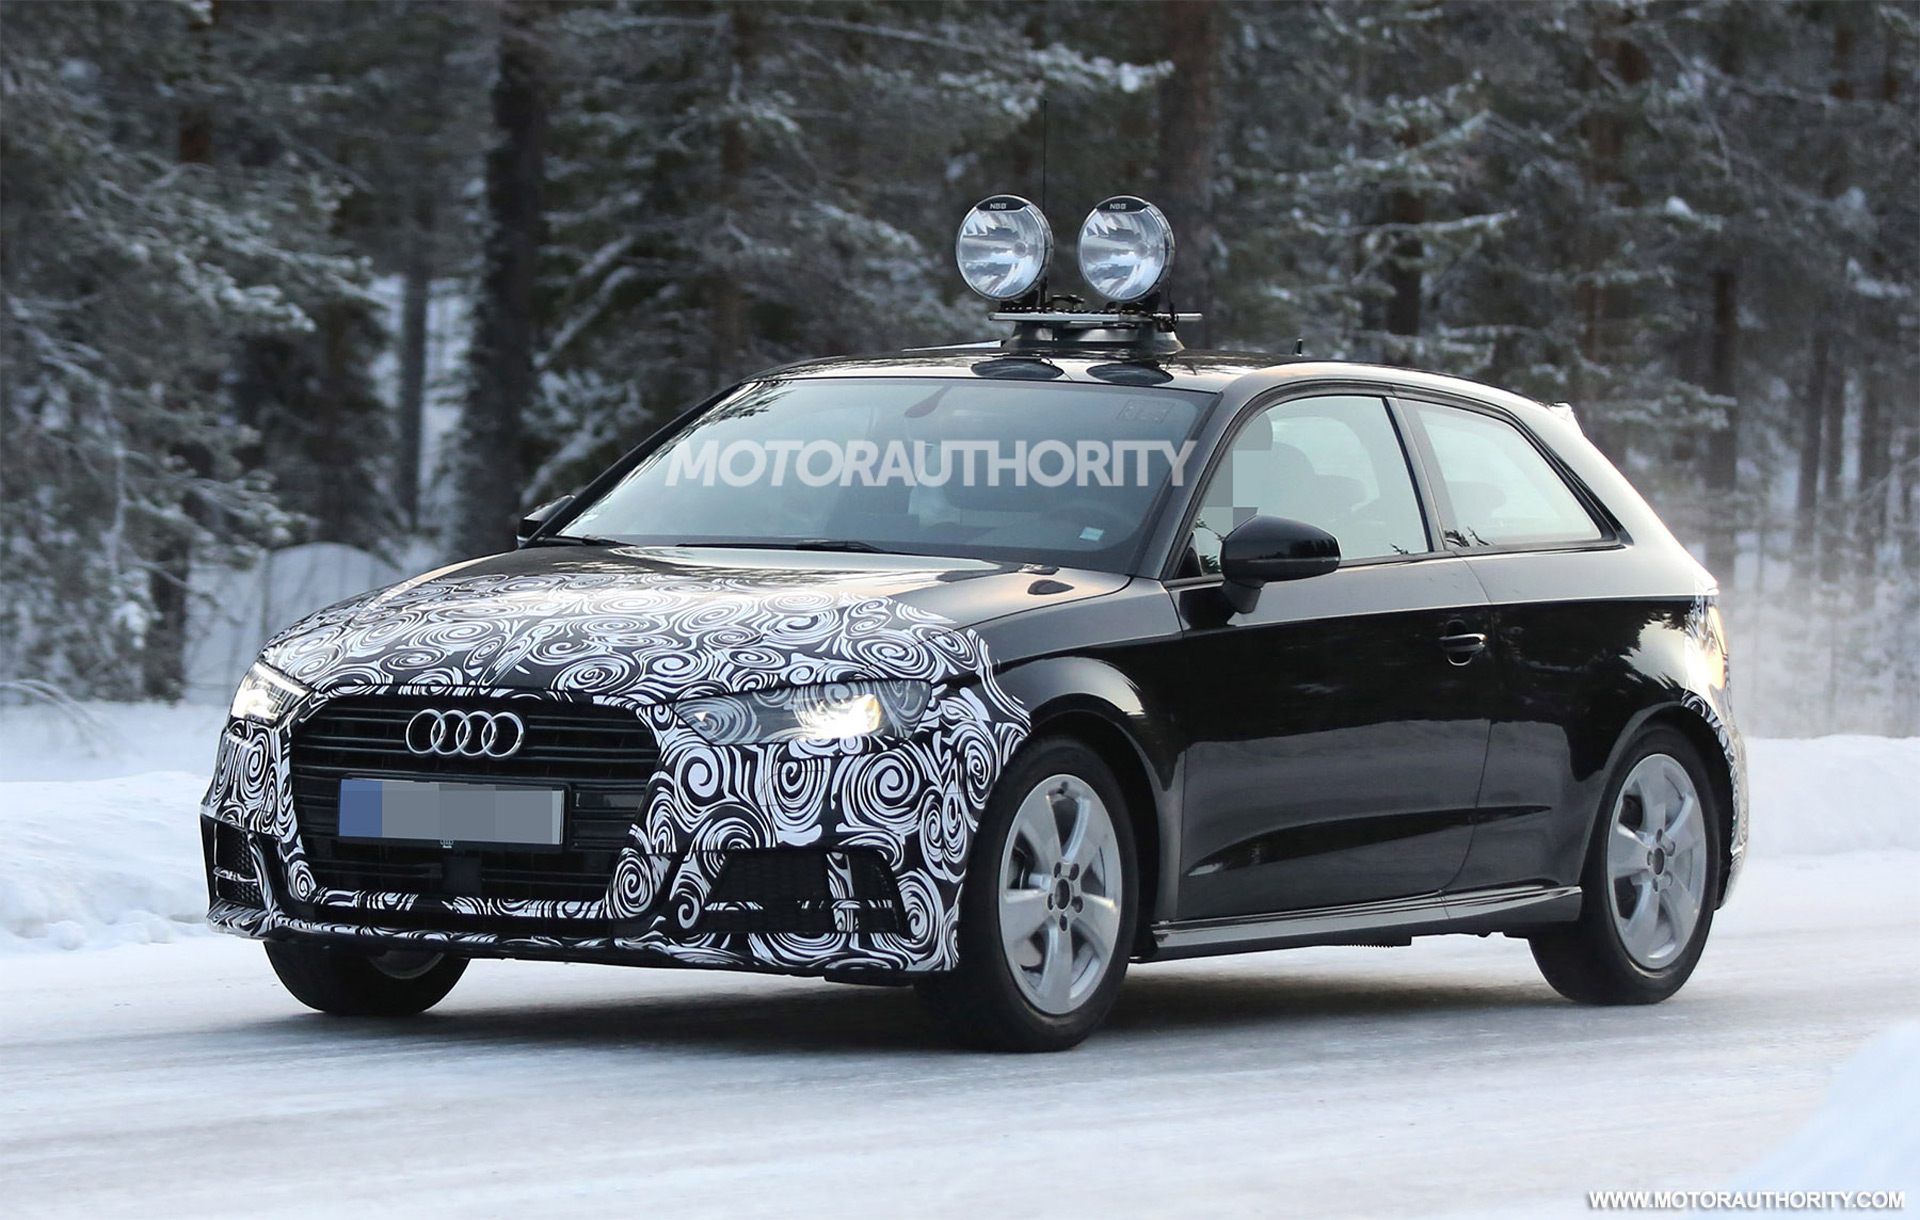 Audi A Hatchback Spy Shots - Audi a3 hatchback